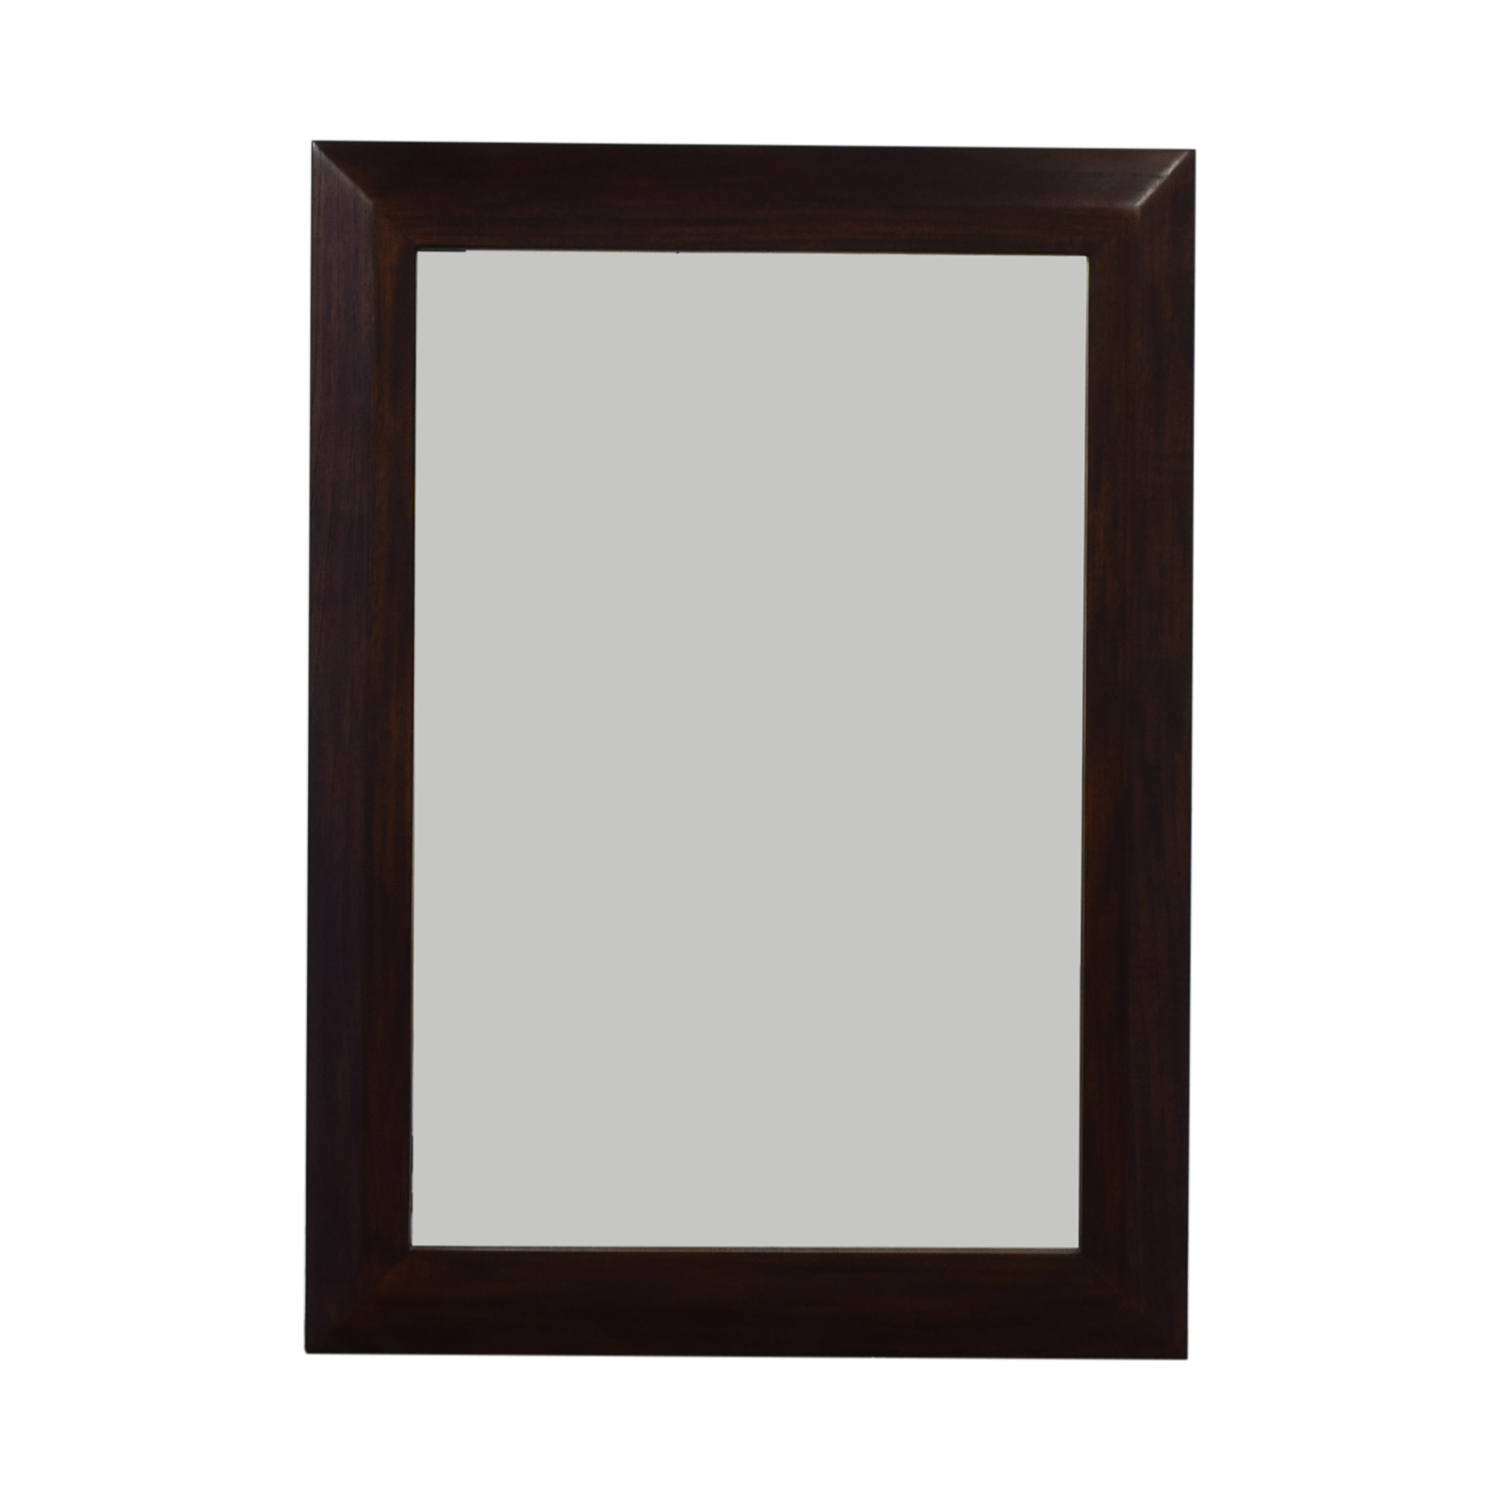 Crate & Barrel Crate & Barrel Wooden Framed Mirror used